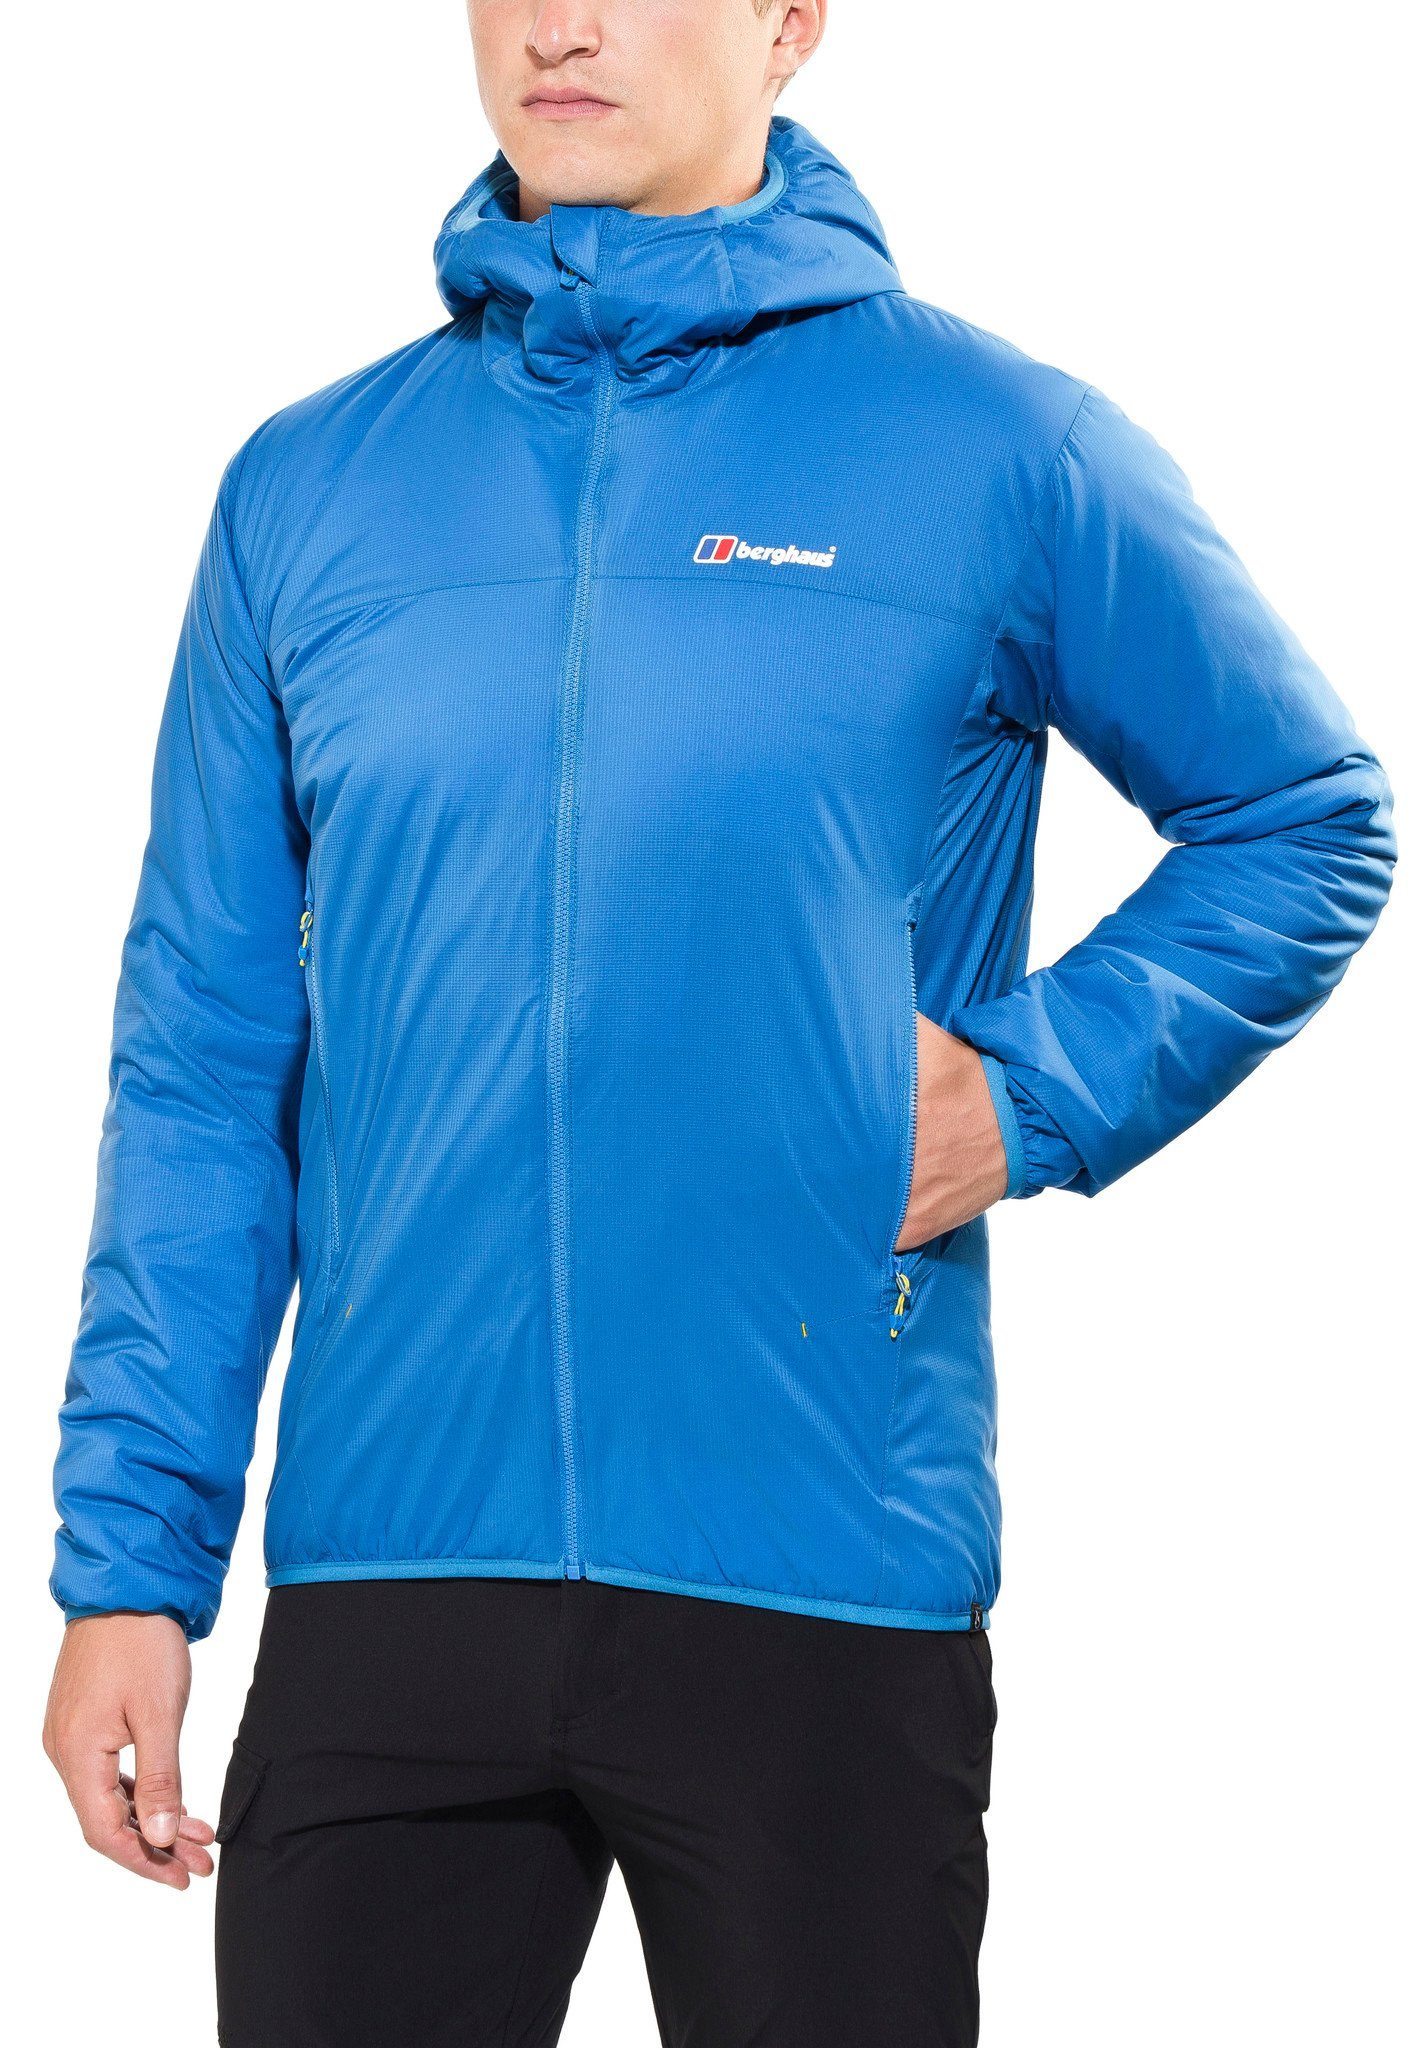 Berghaus Outdoorjacke »Reversa Jacket Men«